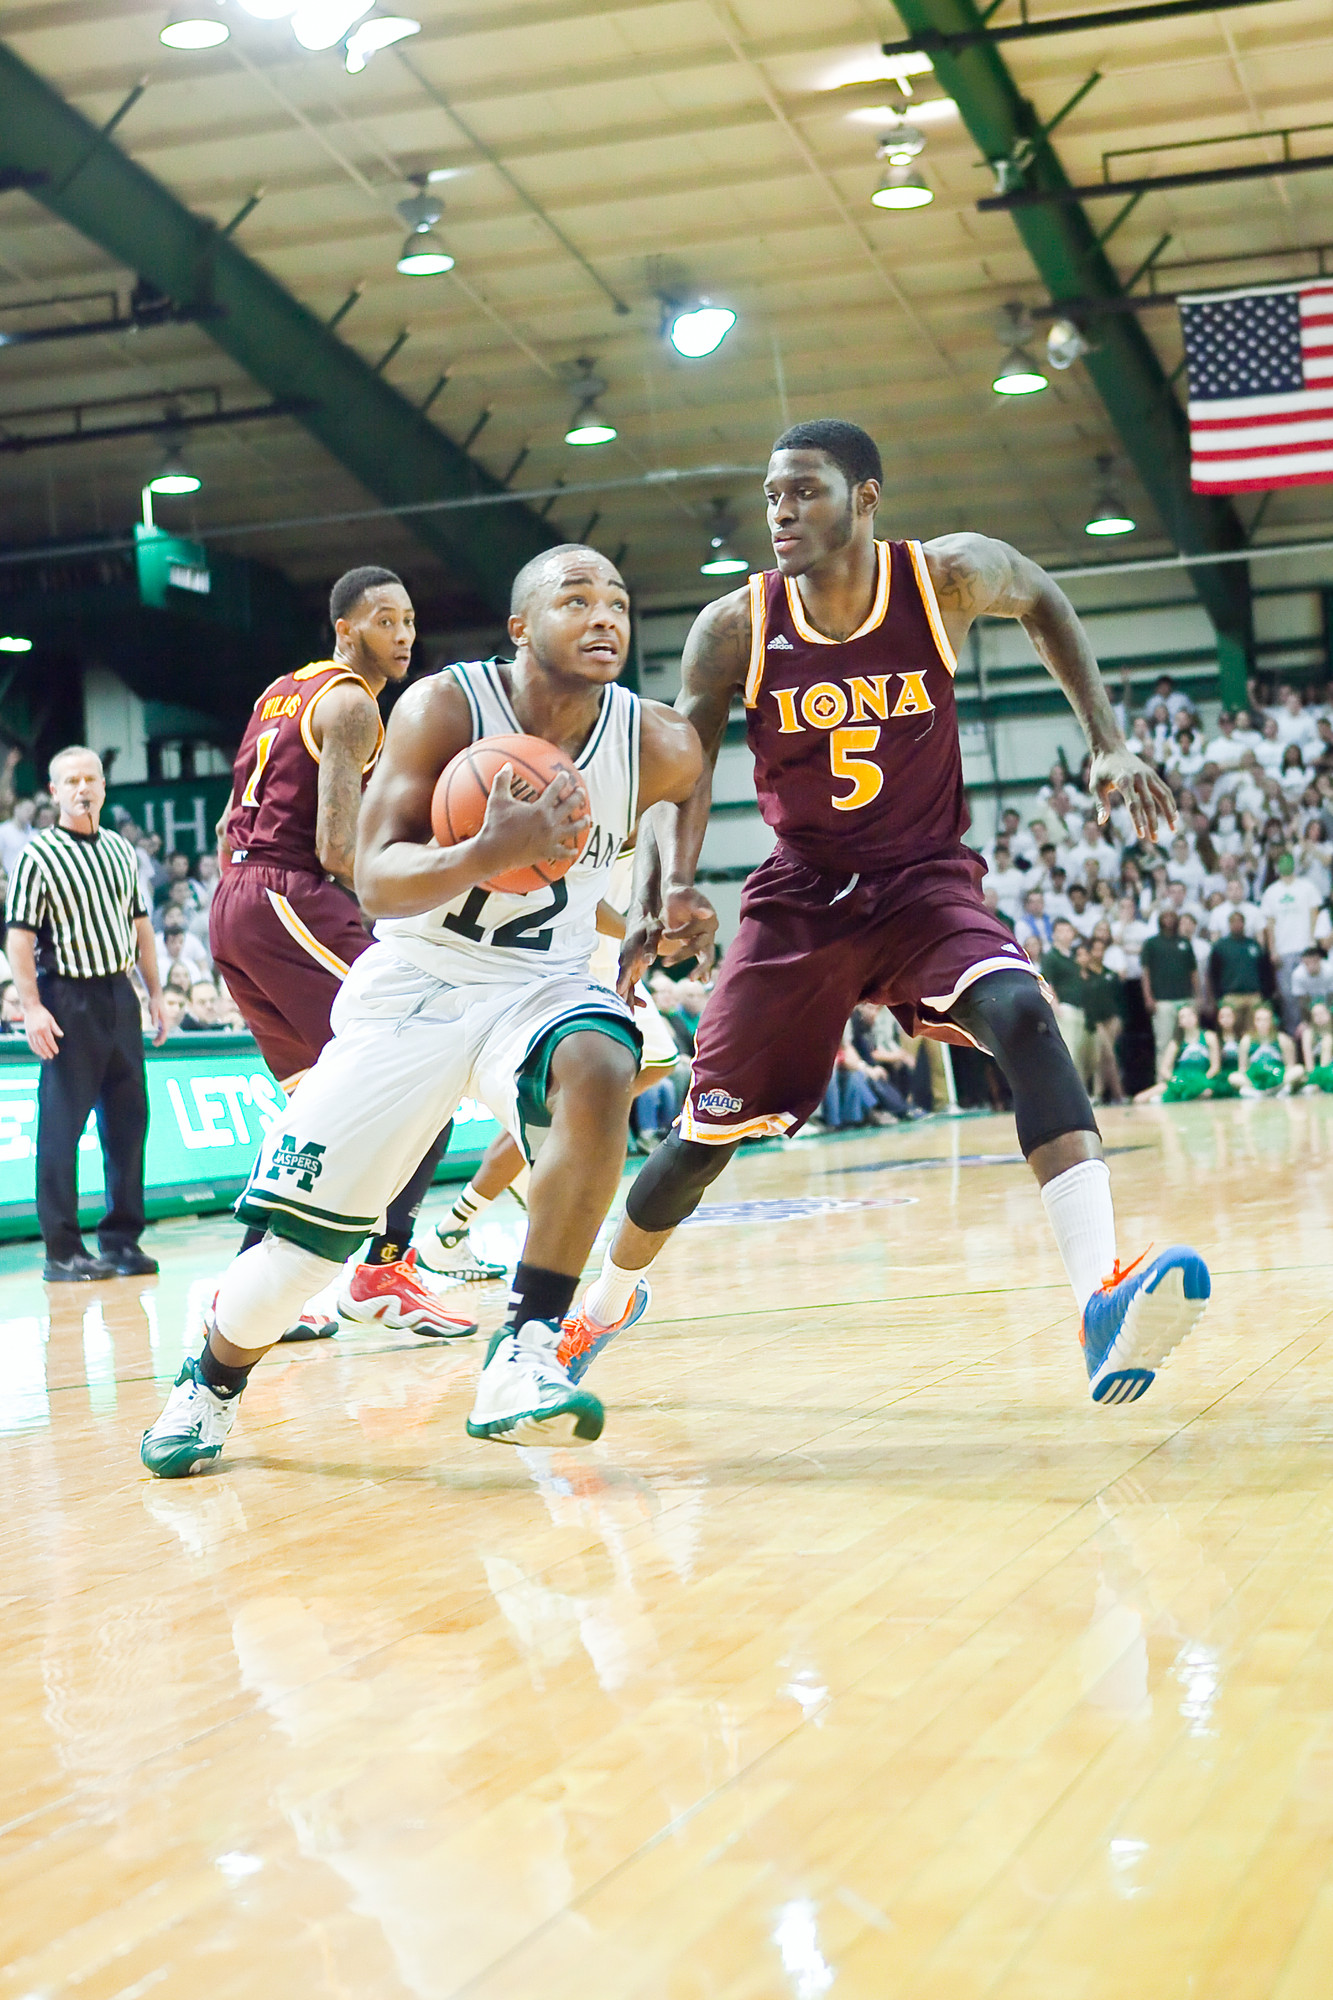 RaShawn Stores, No. 12 for Manhattan College, stays in control of the ball against Iona's A.J. English.